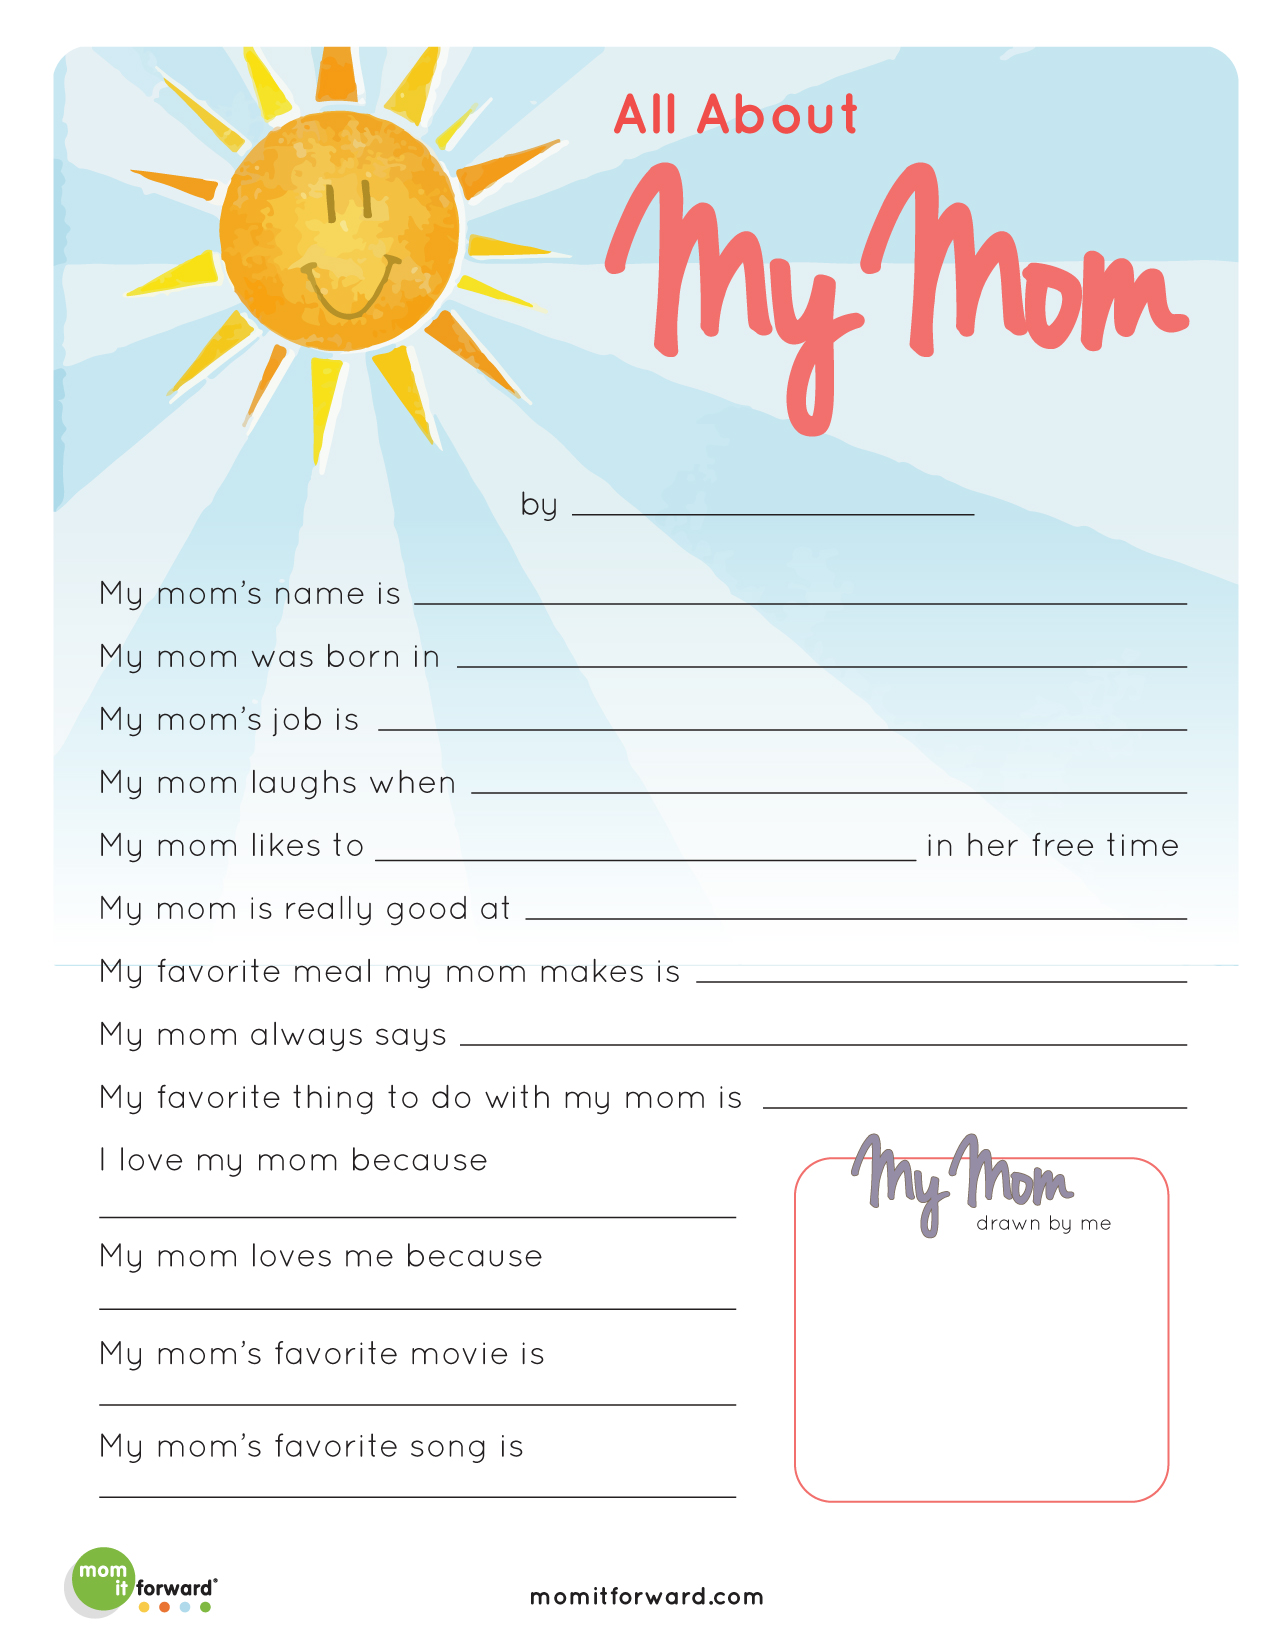 Mother's Day: All About My Mom Printable - Mom it ForwardMom it ...